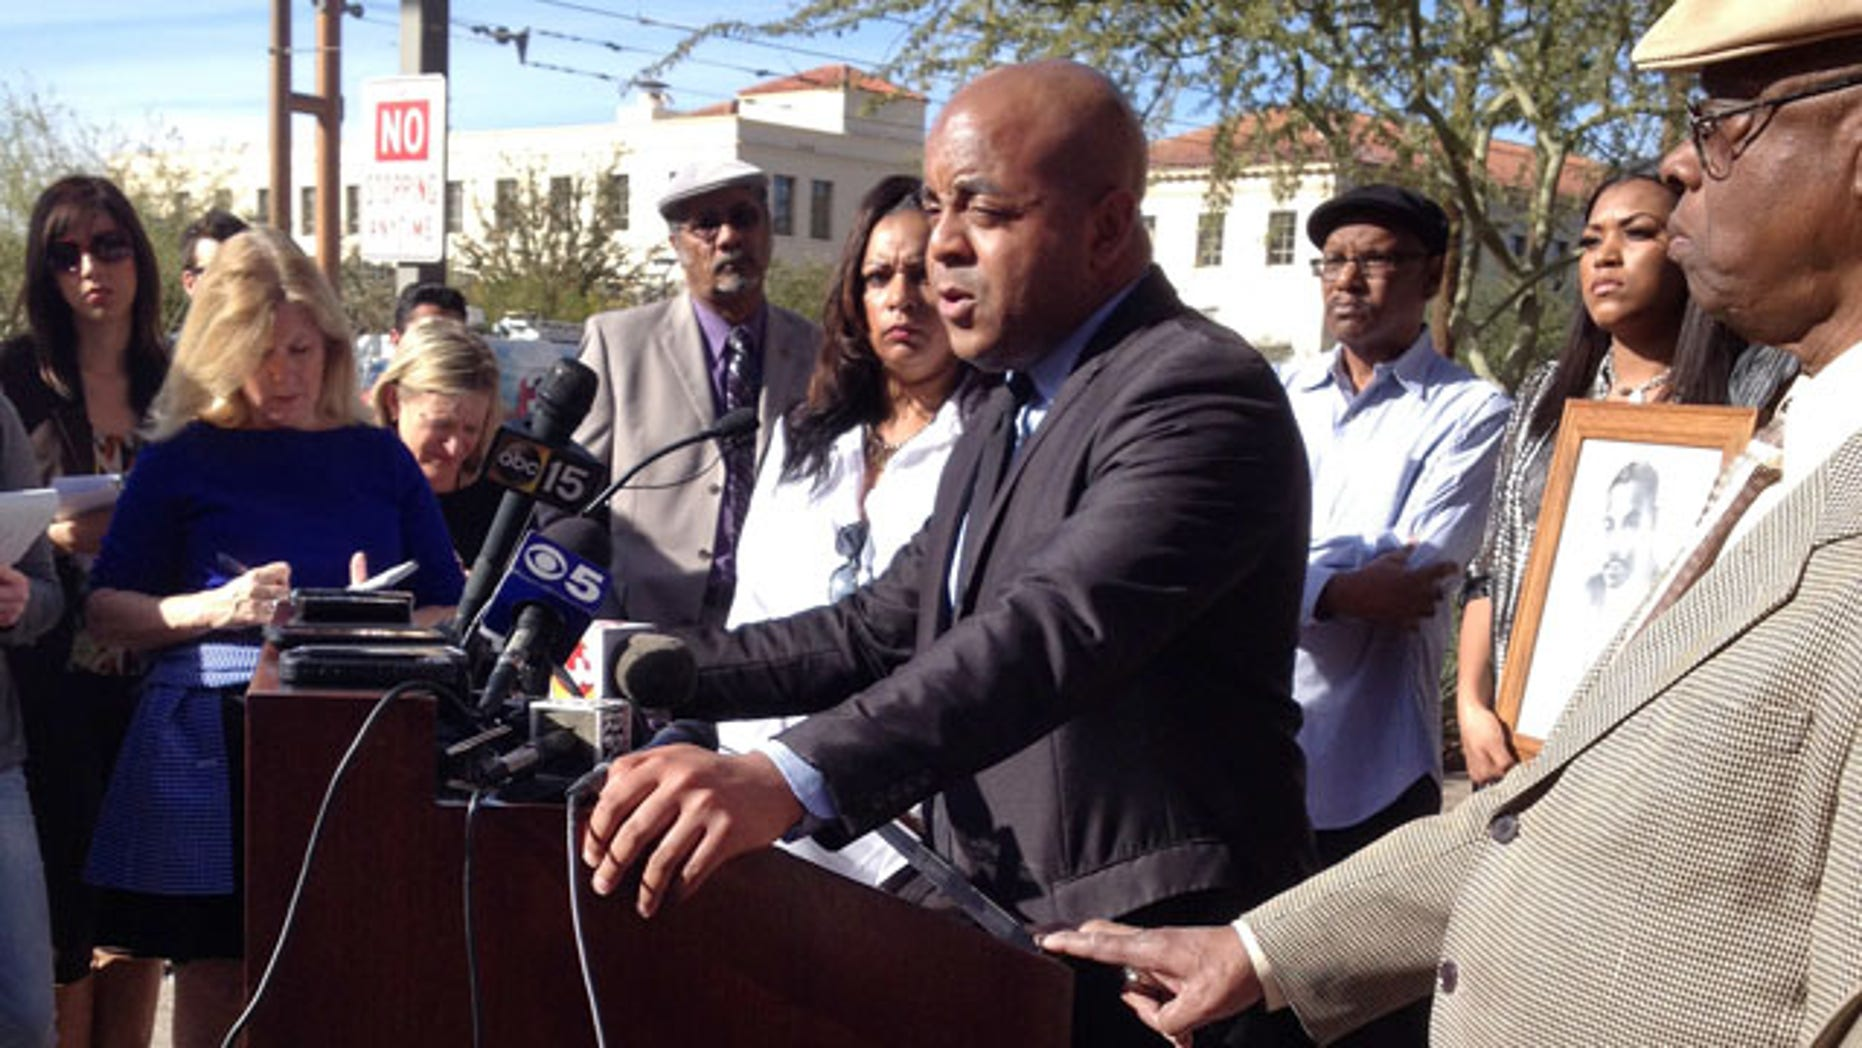 January 21, 2014: The Rev. Jarrett Maupin, center, an Arizona civil rights activist, speaks during a news conference in Phoenix to discuss accusations that an Arizona State University fraternity hosted a distasteful party in commemoration of Martin Luther King Jr. Day. Maupin is calling on the school to expel all students involved and permanently ban the Tau Kappa Epsilon fraternity from campus. (AP Photo/Brian Skoloff)